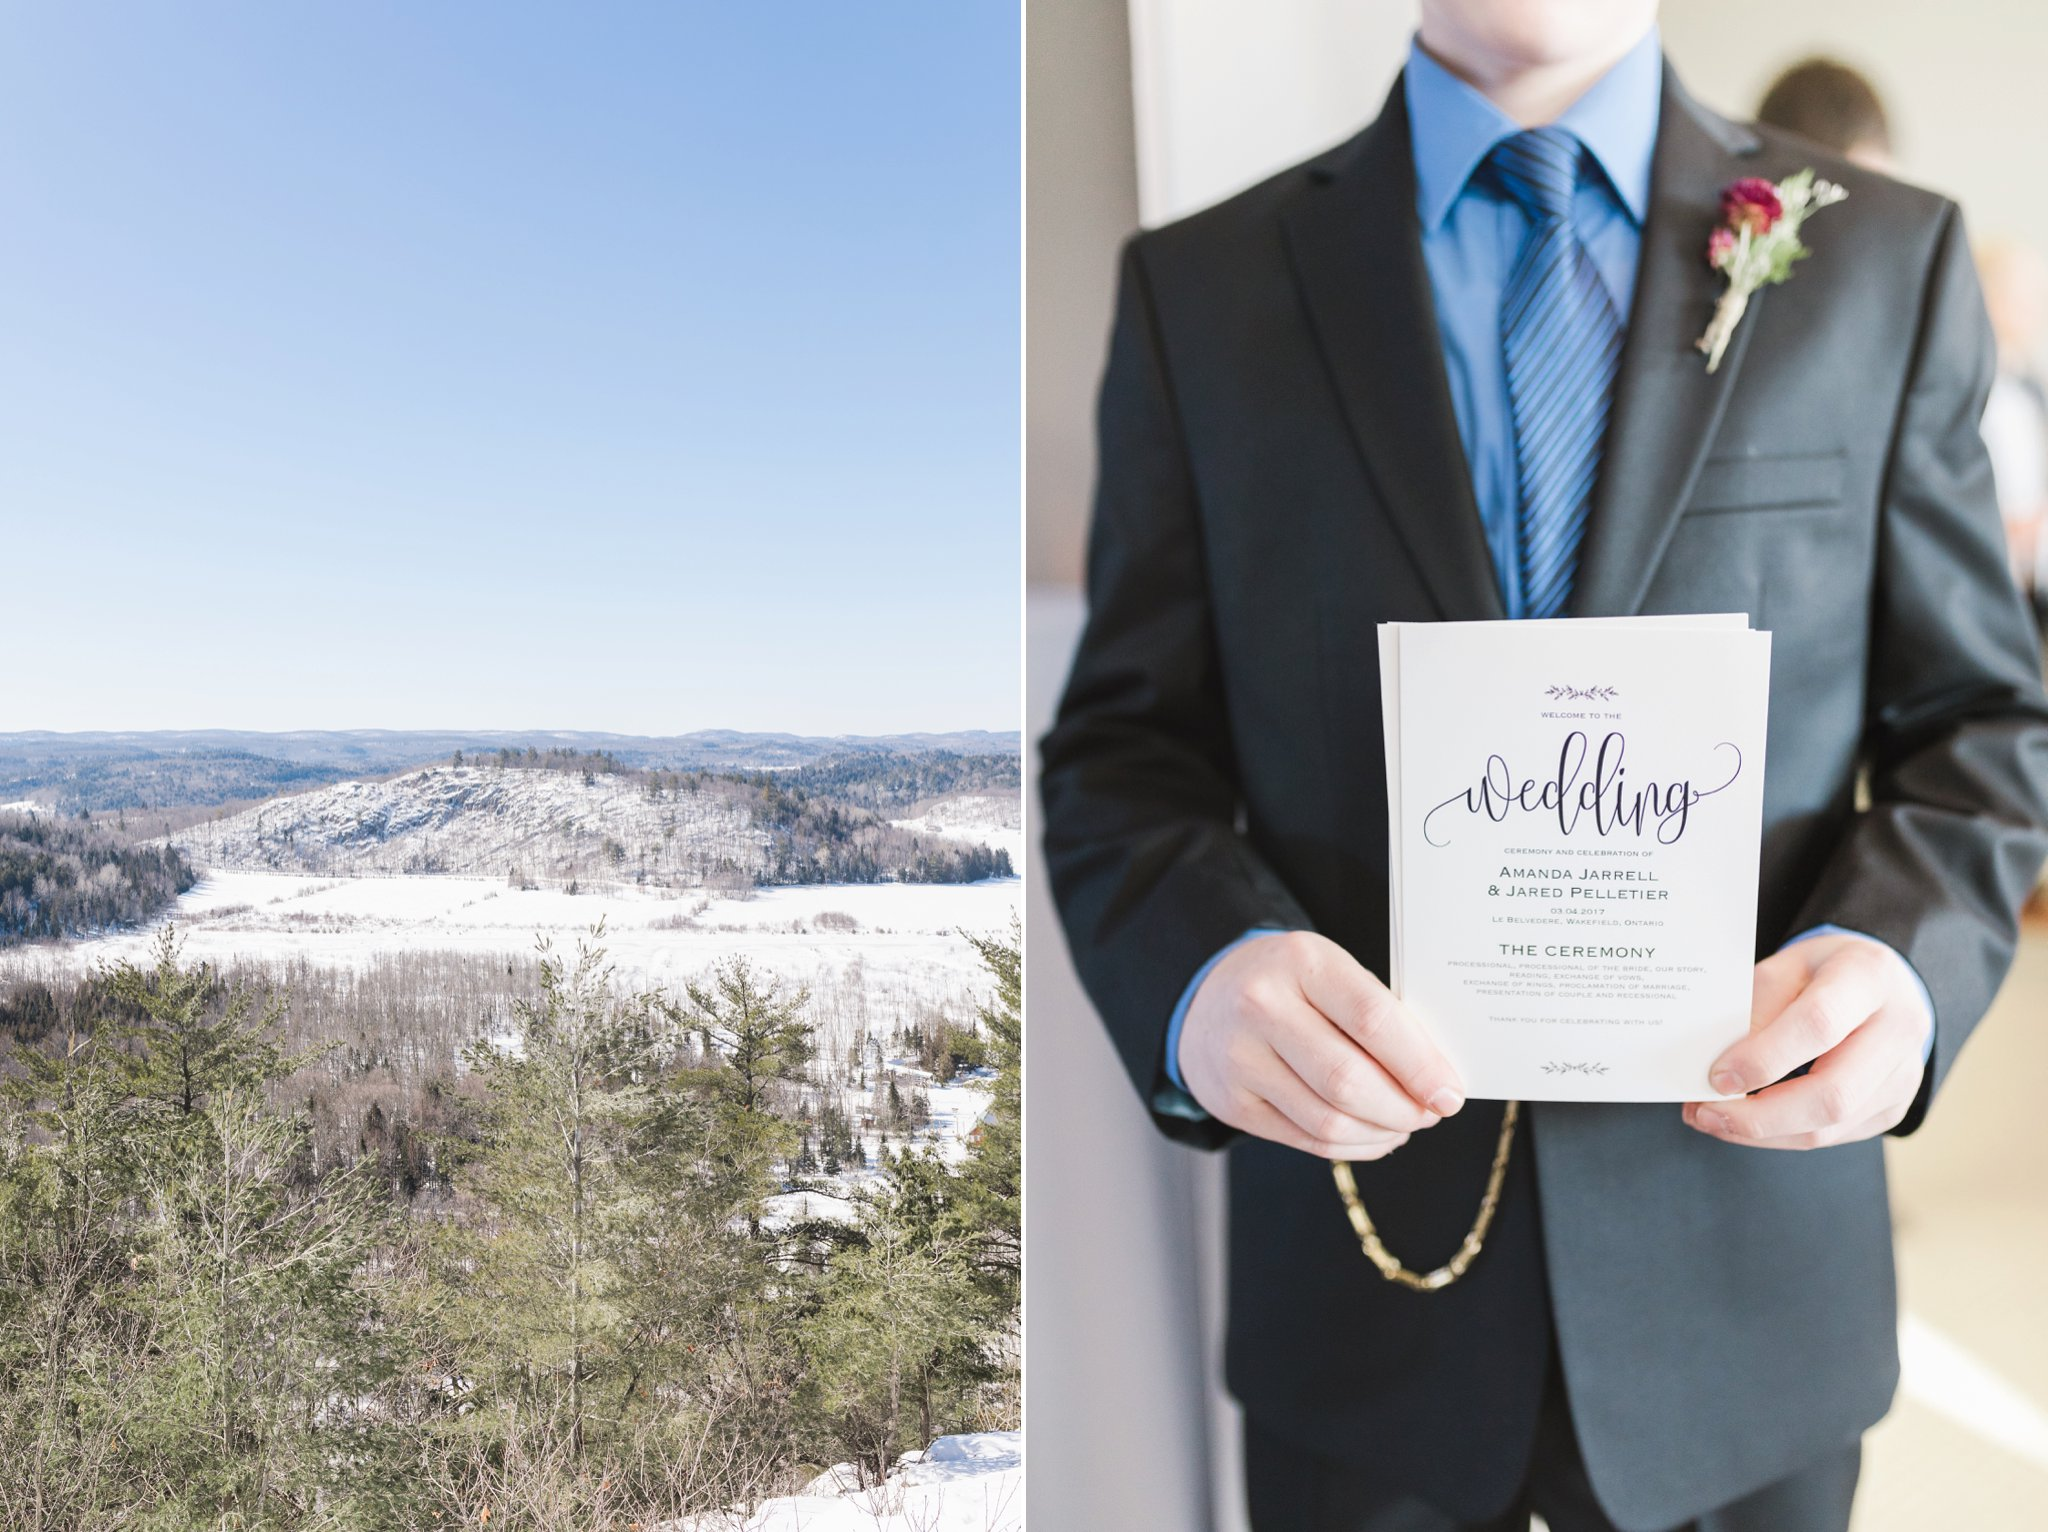 Etsy calligraphy suite at the Winter wedding at Le Belvedere